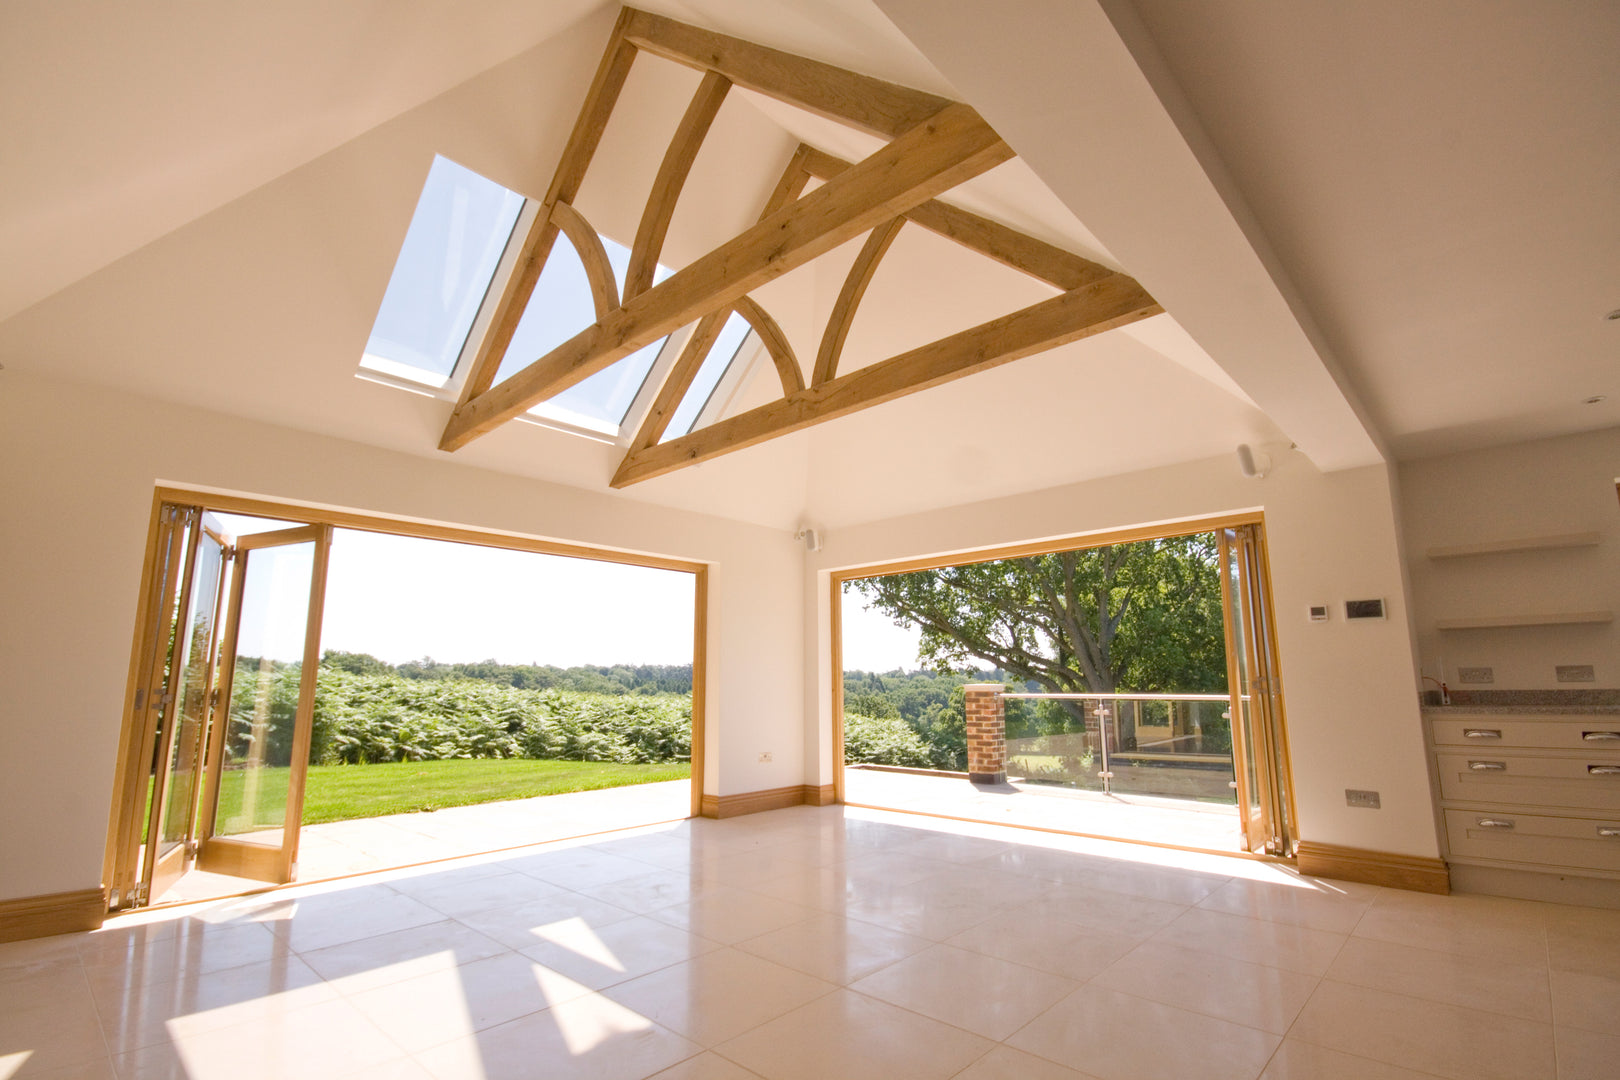 Oak Queen Post Trusses